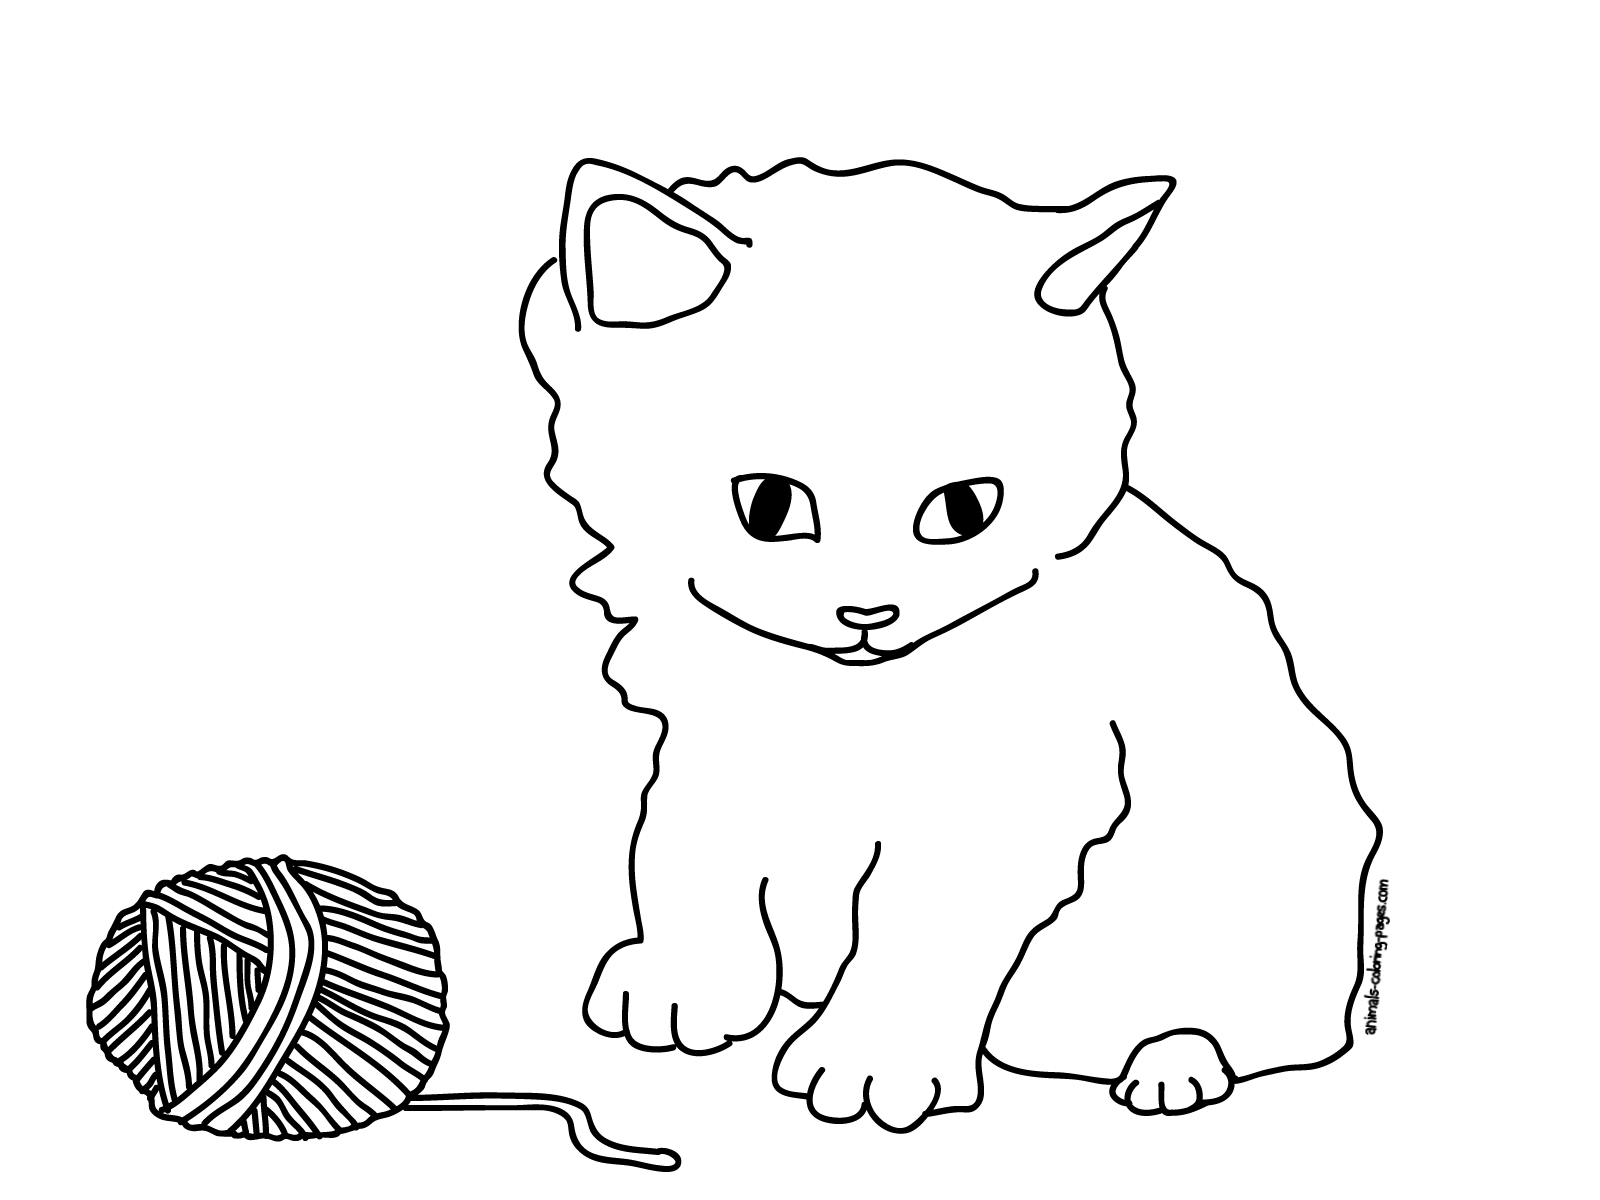 baby kitten coloring pages get this printable cute baby kitten coloring pages 5sda9 pages kitten coloring baby